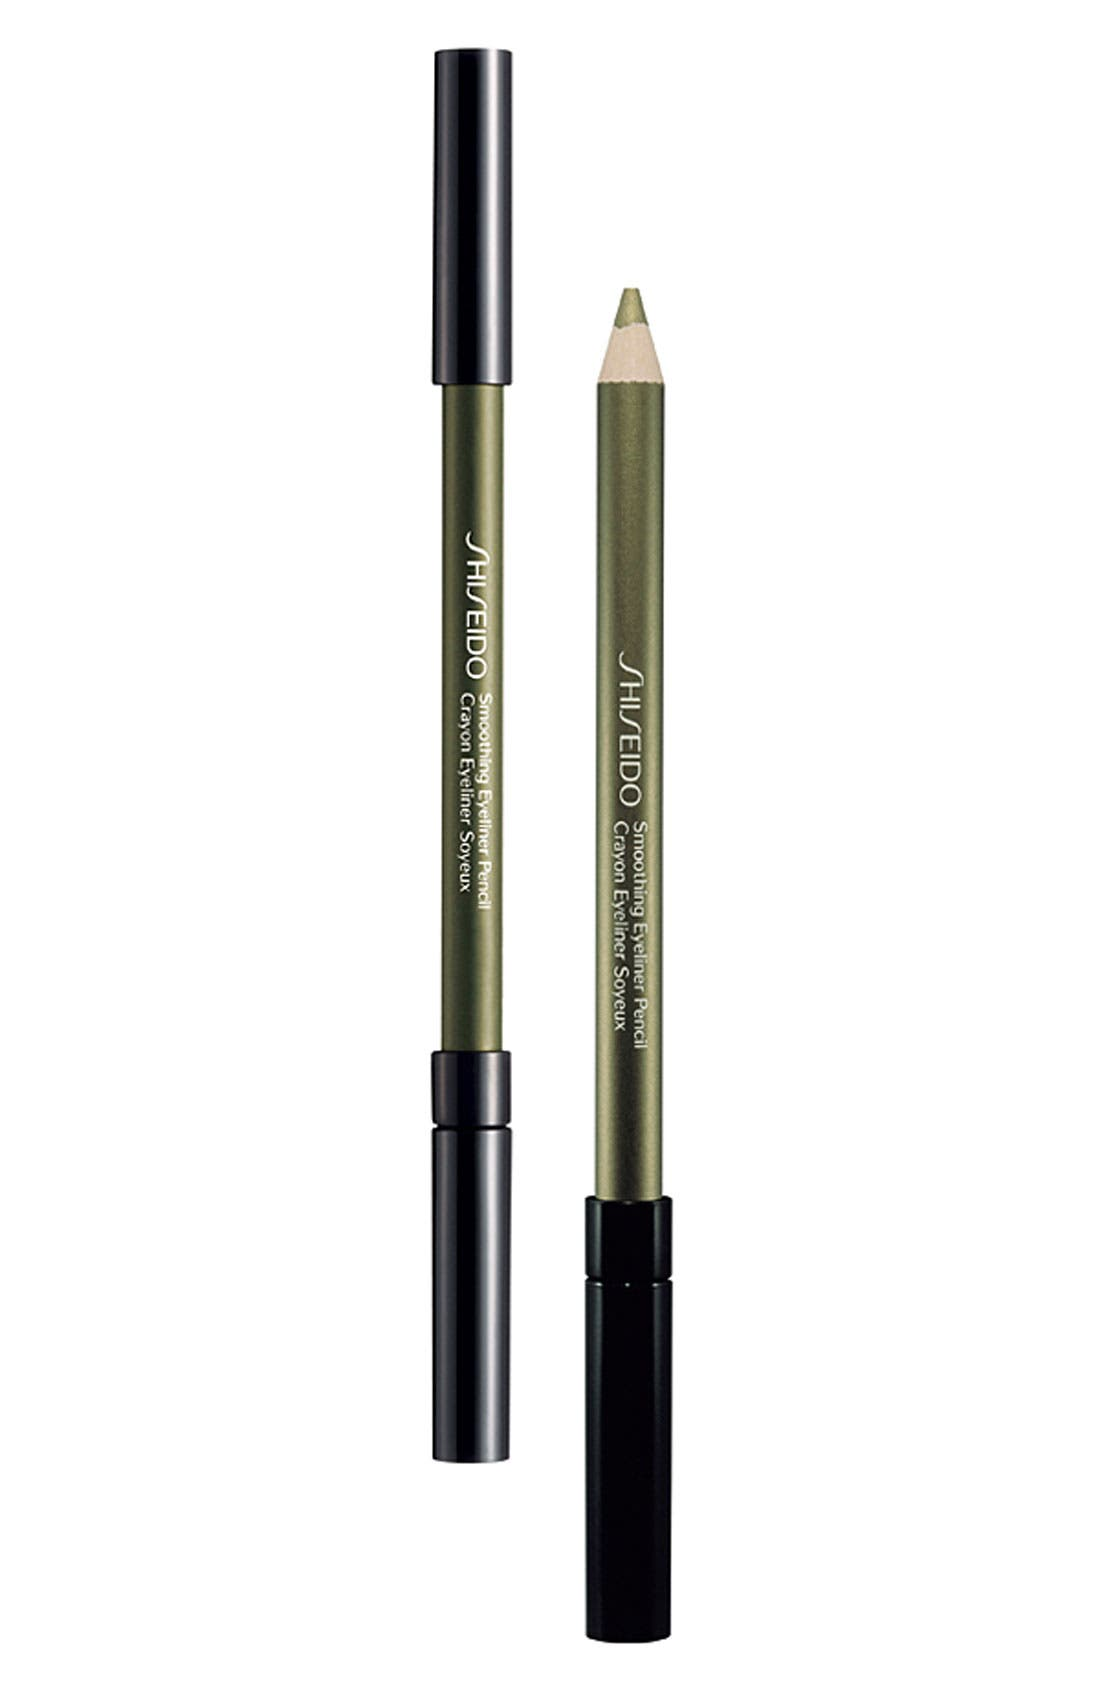 'The Makeup' Smoothing Eyeliner Pencil,                             Main thumbnail 3, color,